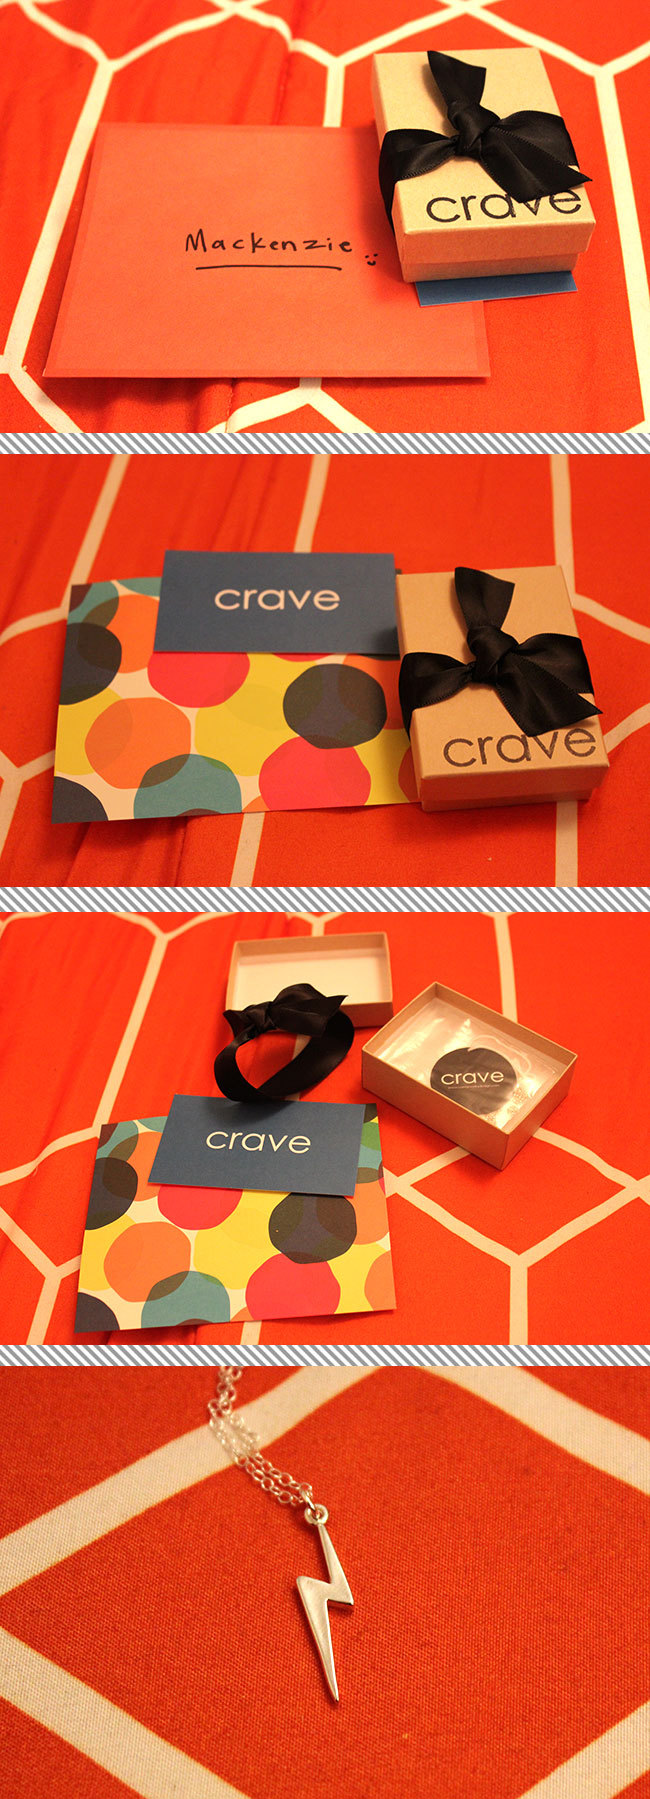 unpacking my necklace from Crave Jewelry